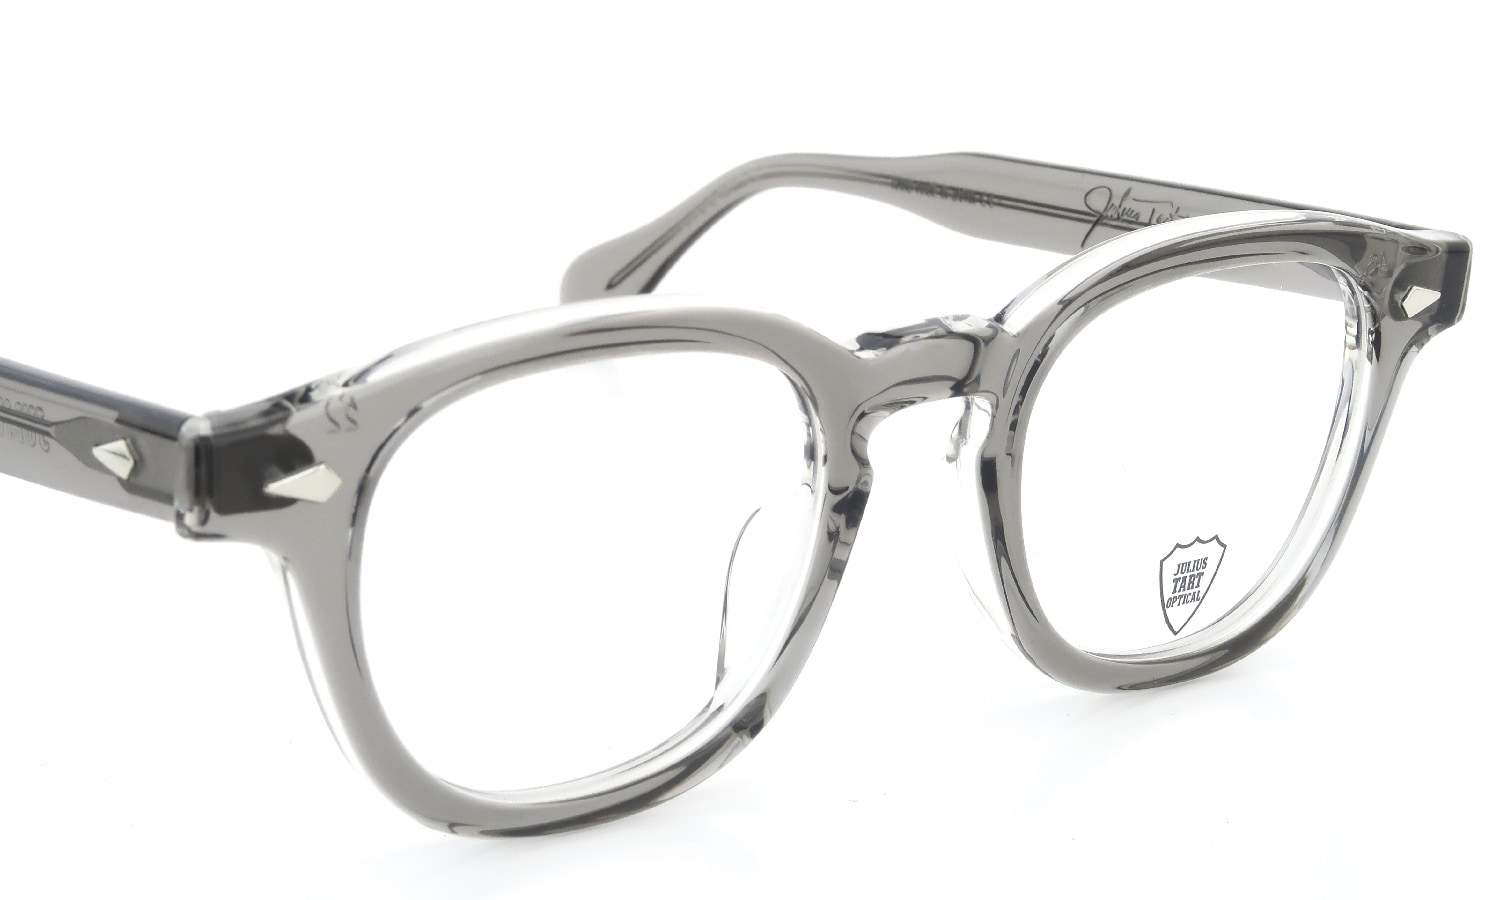 JULIUS TART OPTICAL AR-46-22 PL-002L